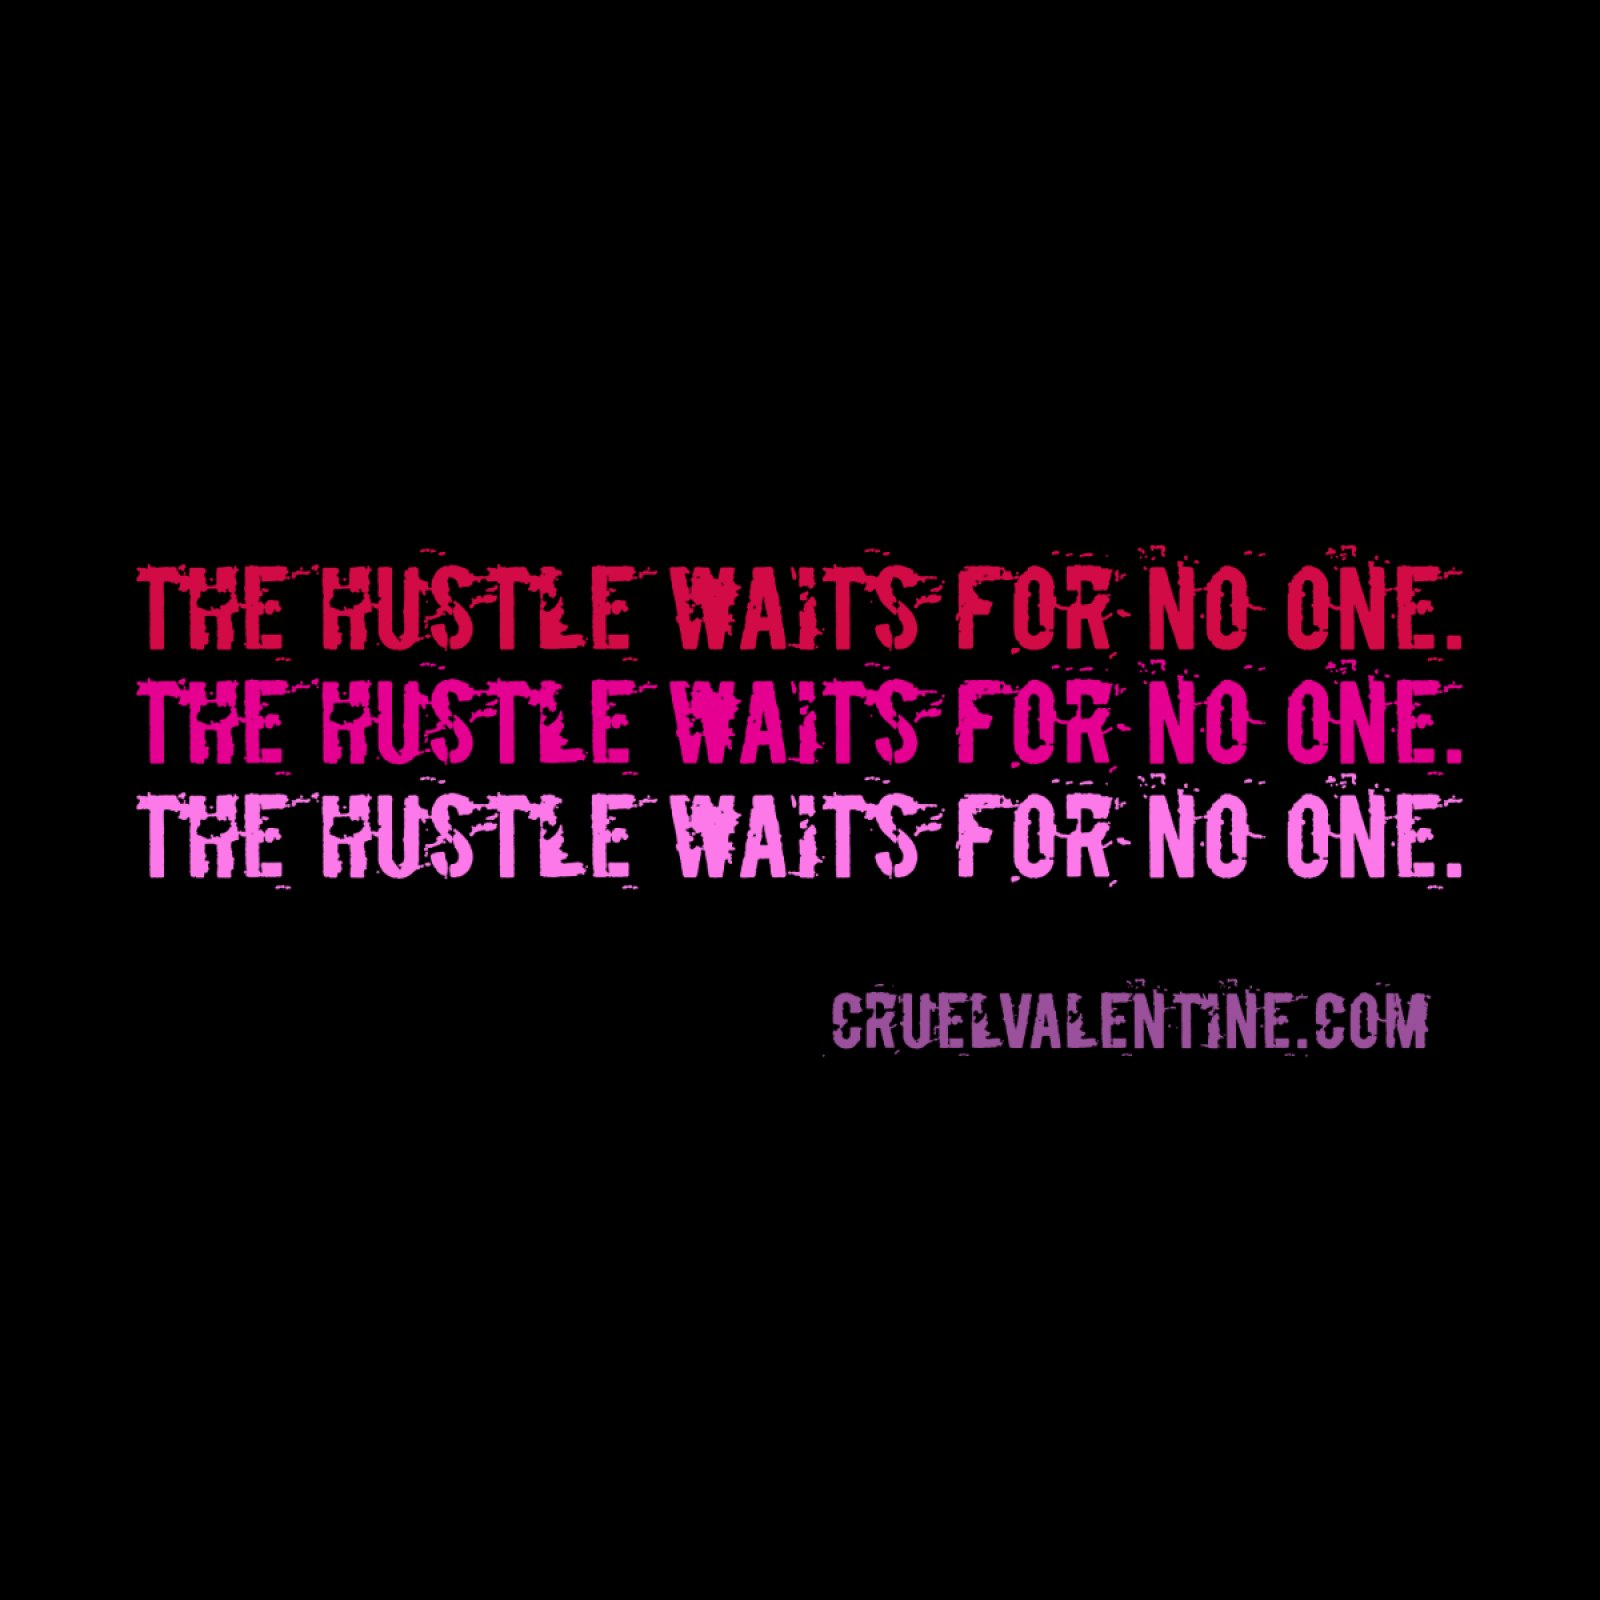 The Hustle Waits For No One in Pink - Available on Shirts and More